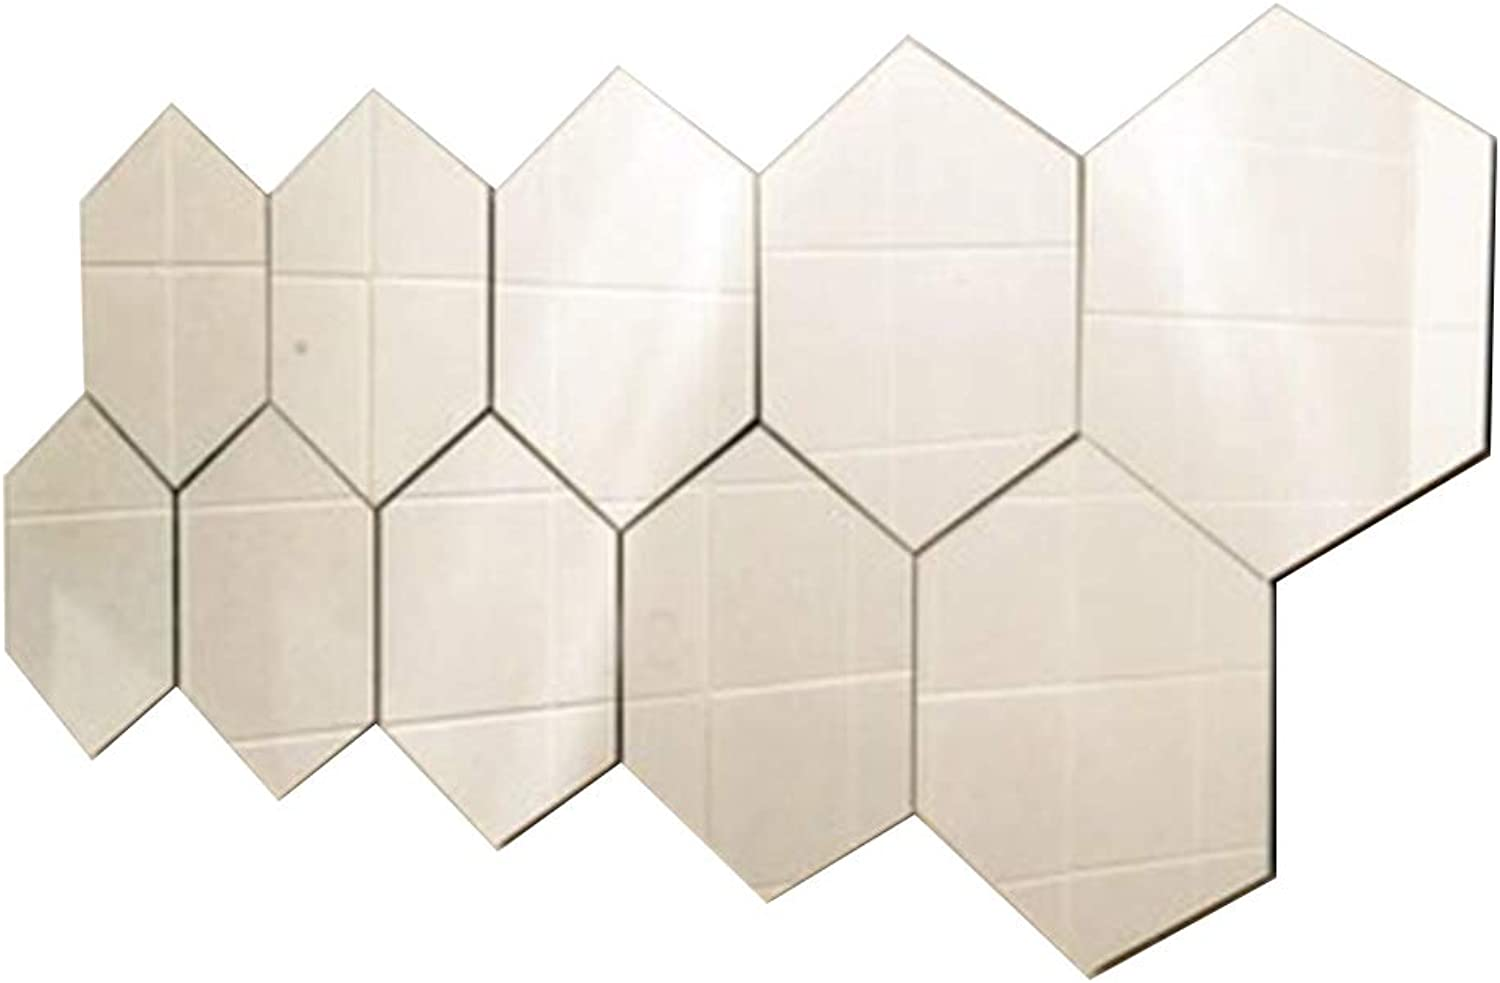 GUOWEI Mirror Wall-Mounted High-Definition Frameless Decoration Hexagon Wall Stickers Simple, 10 Pieces (color   White, Size   Diagonal -21cm)